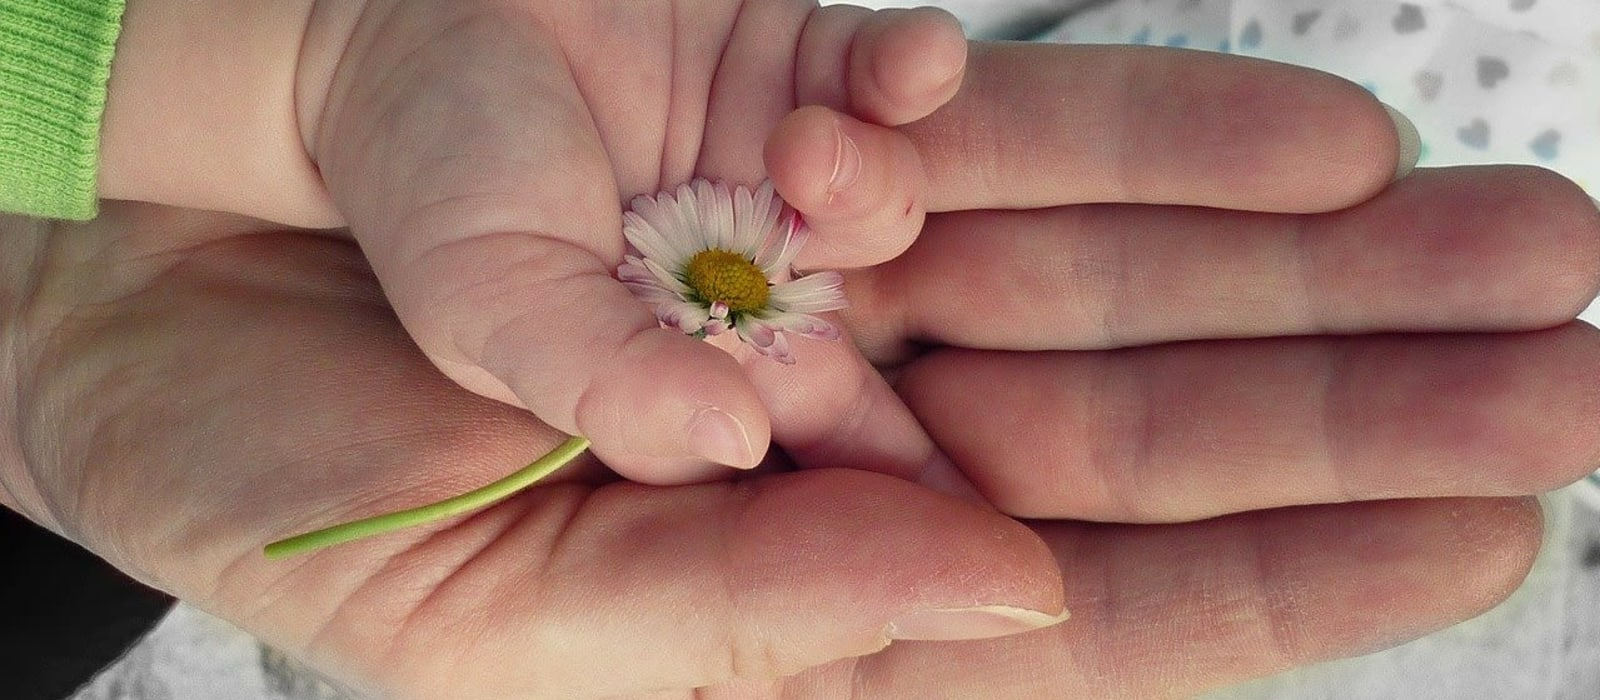 Image shows a small childs hand on top of an adults hand.